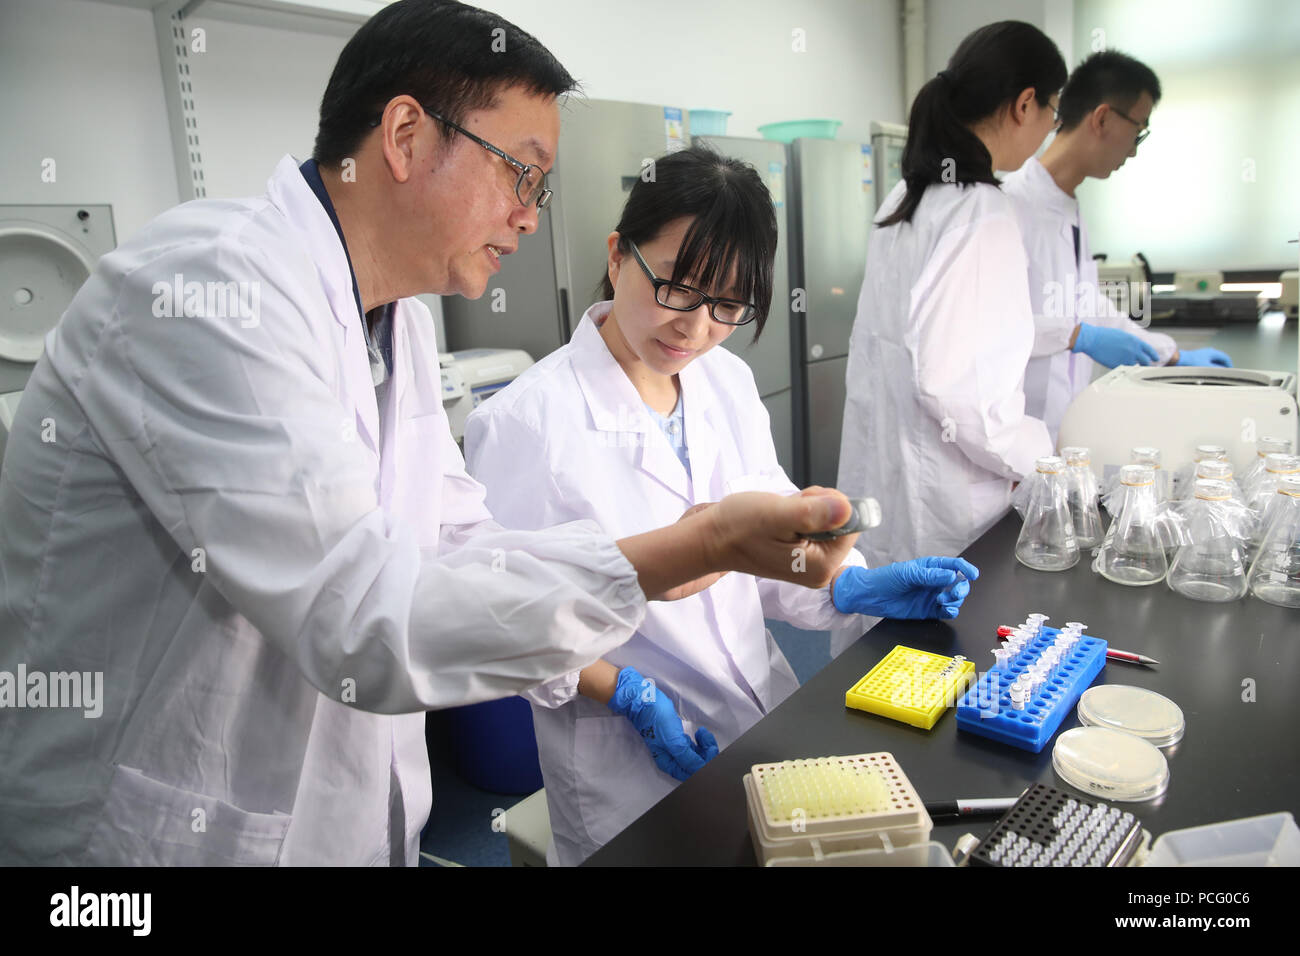 (180802) -- SHANGHAI, Aug. 2, 2018 (Xinhua) -- Qin Zhongjun (L), a molecular biologist at the Center for Excellence in Molecular Plant Sciences of the Shanghai Institute of Plant Physiology and Ecology under the Chinese Academy of Sciences, discusses with his team member in Shanghai, east China, July 31, 2018. Brewer's yeast, one-third of whose genome is said to share ancestry with humans, has 16 chromosomes. However, Chinese scientists have managed to fit nearly all its genetic material into just one chromosome while not affecting the majority of its functions, according to a paper released T - Stock Image